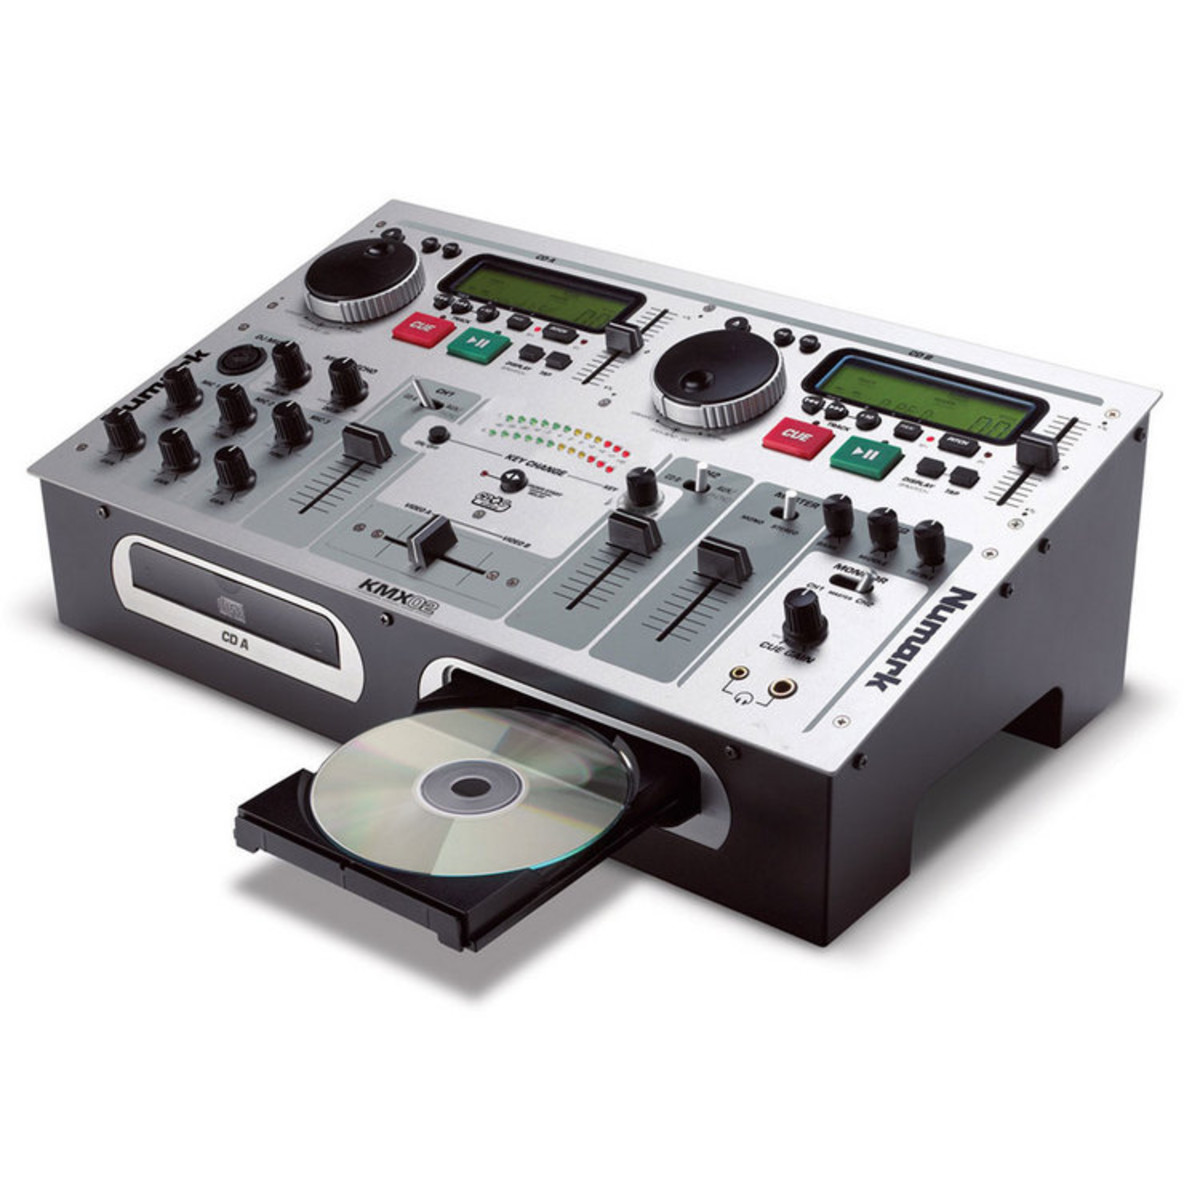 disc numark kmx02 compact dual deck dj station at gear4music com rh gear4music es DJ Table Numark iPad DJ Station